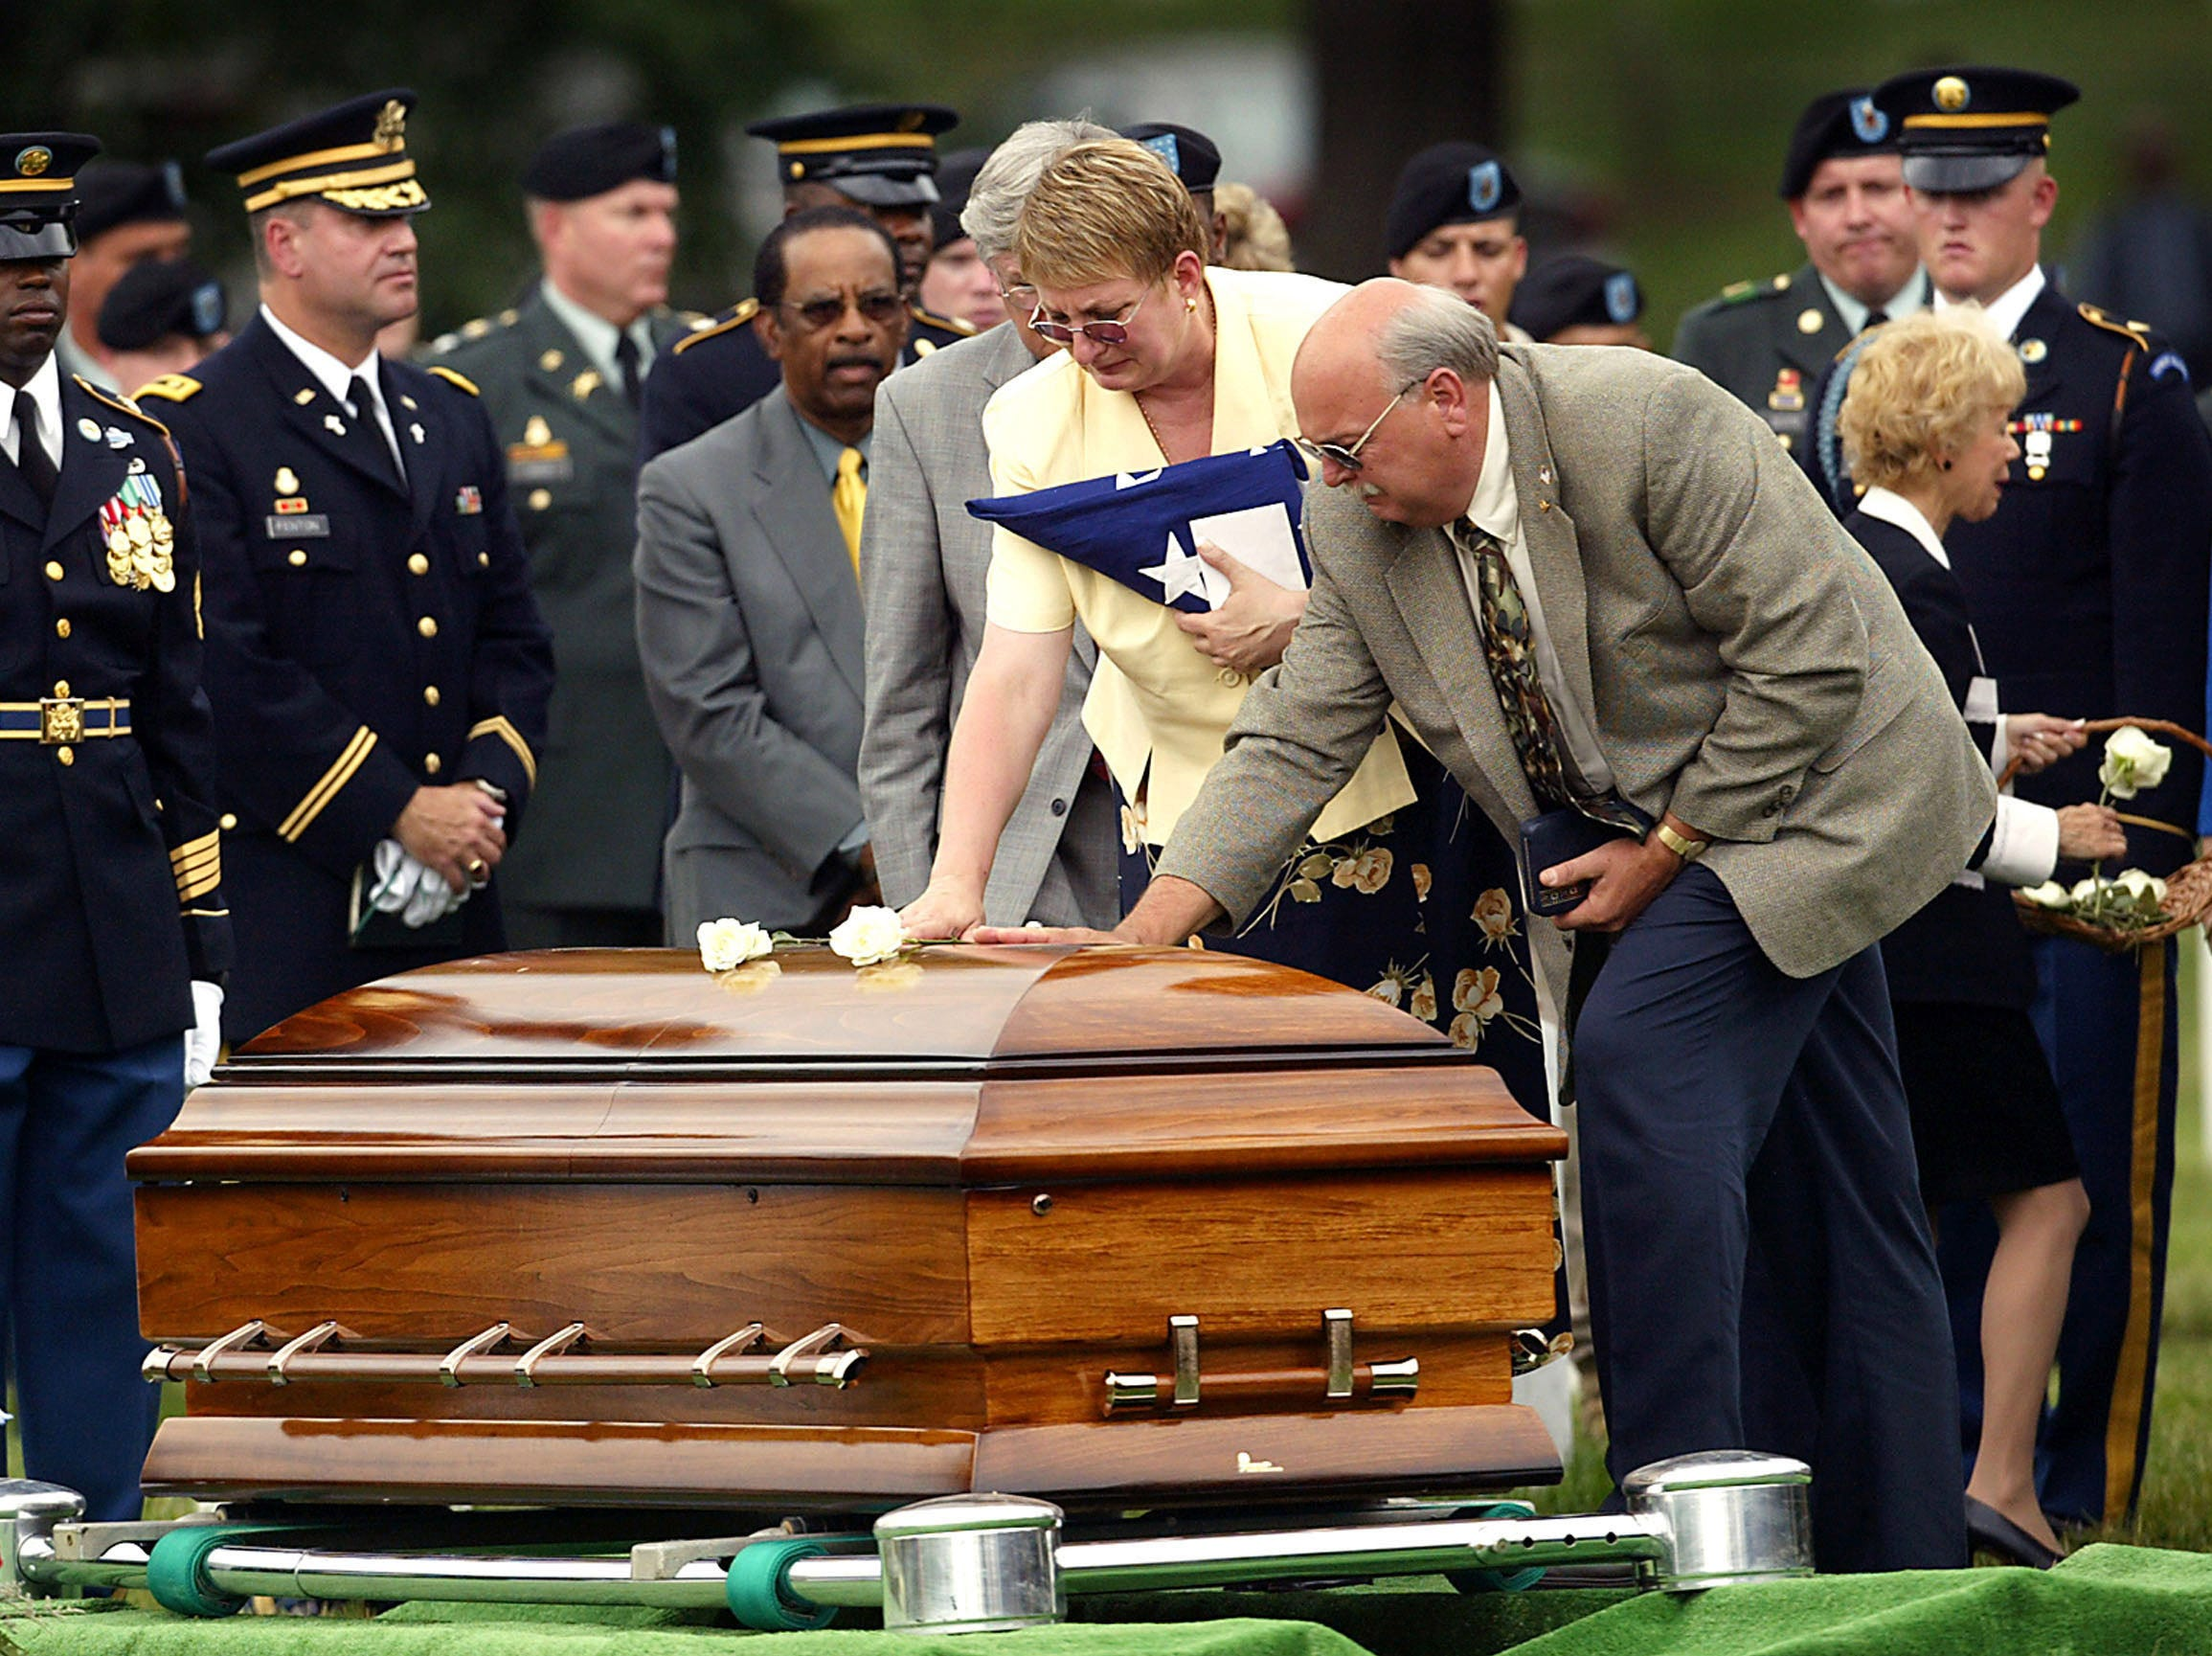 After leaving flowers, Cheryl and Raymond Doltz touch the casket of their son Ryan after his honors funeral at Arlington National Cemetery. Doltz, 26,  was killed in Baghdad, Iraq, when his vehicle hit an improvised explosive device.  June 16, 2004, Arlington, VA